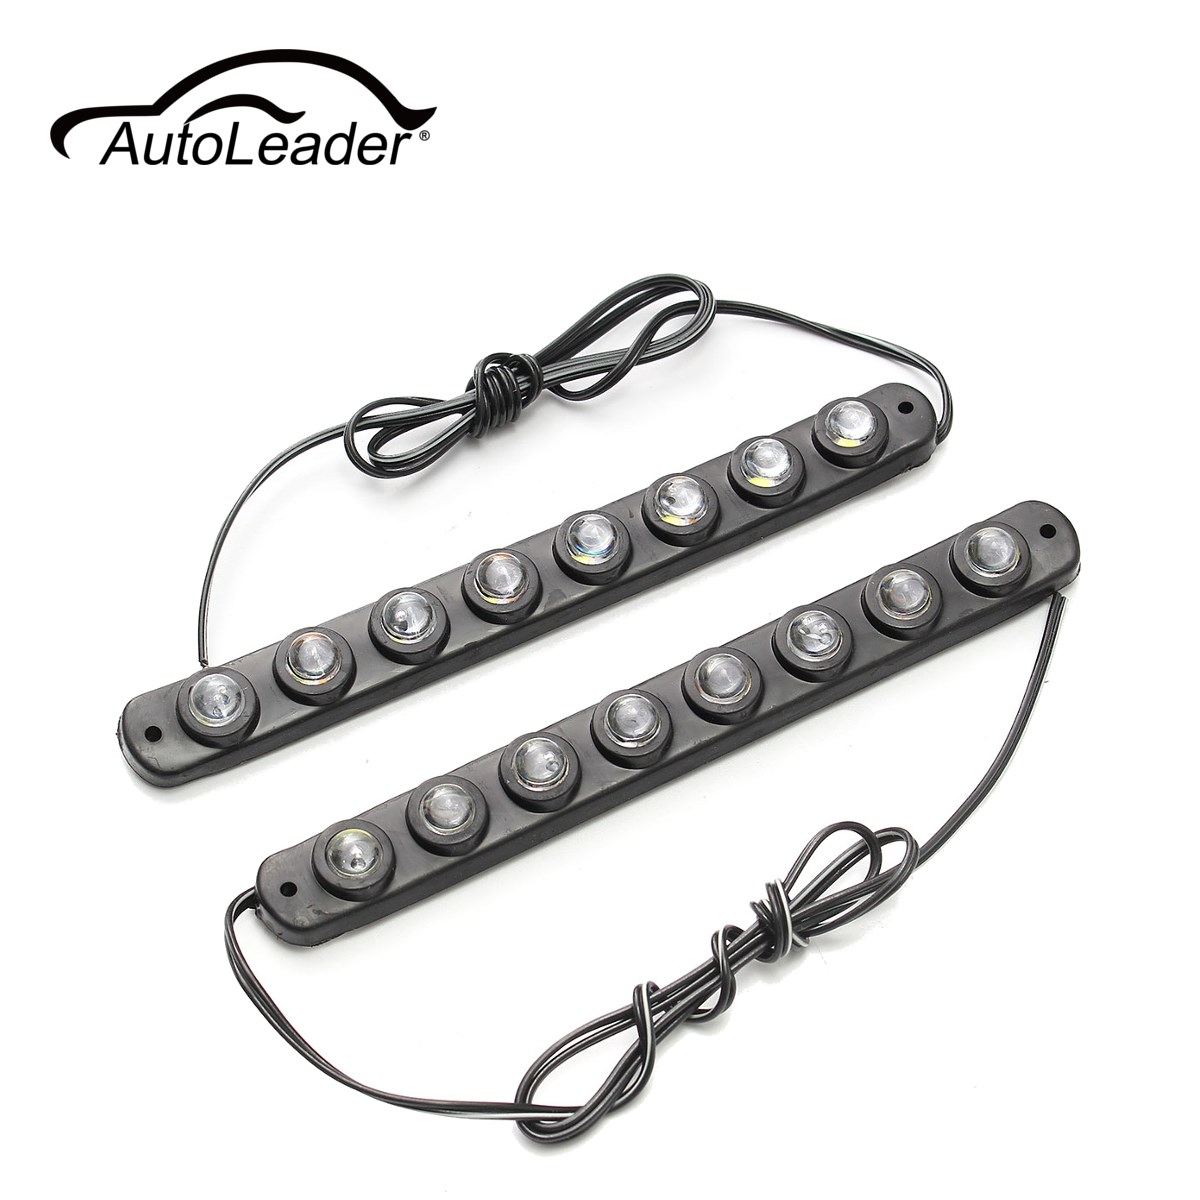 AutoLeader 1Pair 8 LED Universal Car Trunk Daytime Running Light 12V DRL Fog Lamp Waterproof 6000-6500K Automobile Lamp